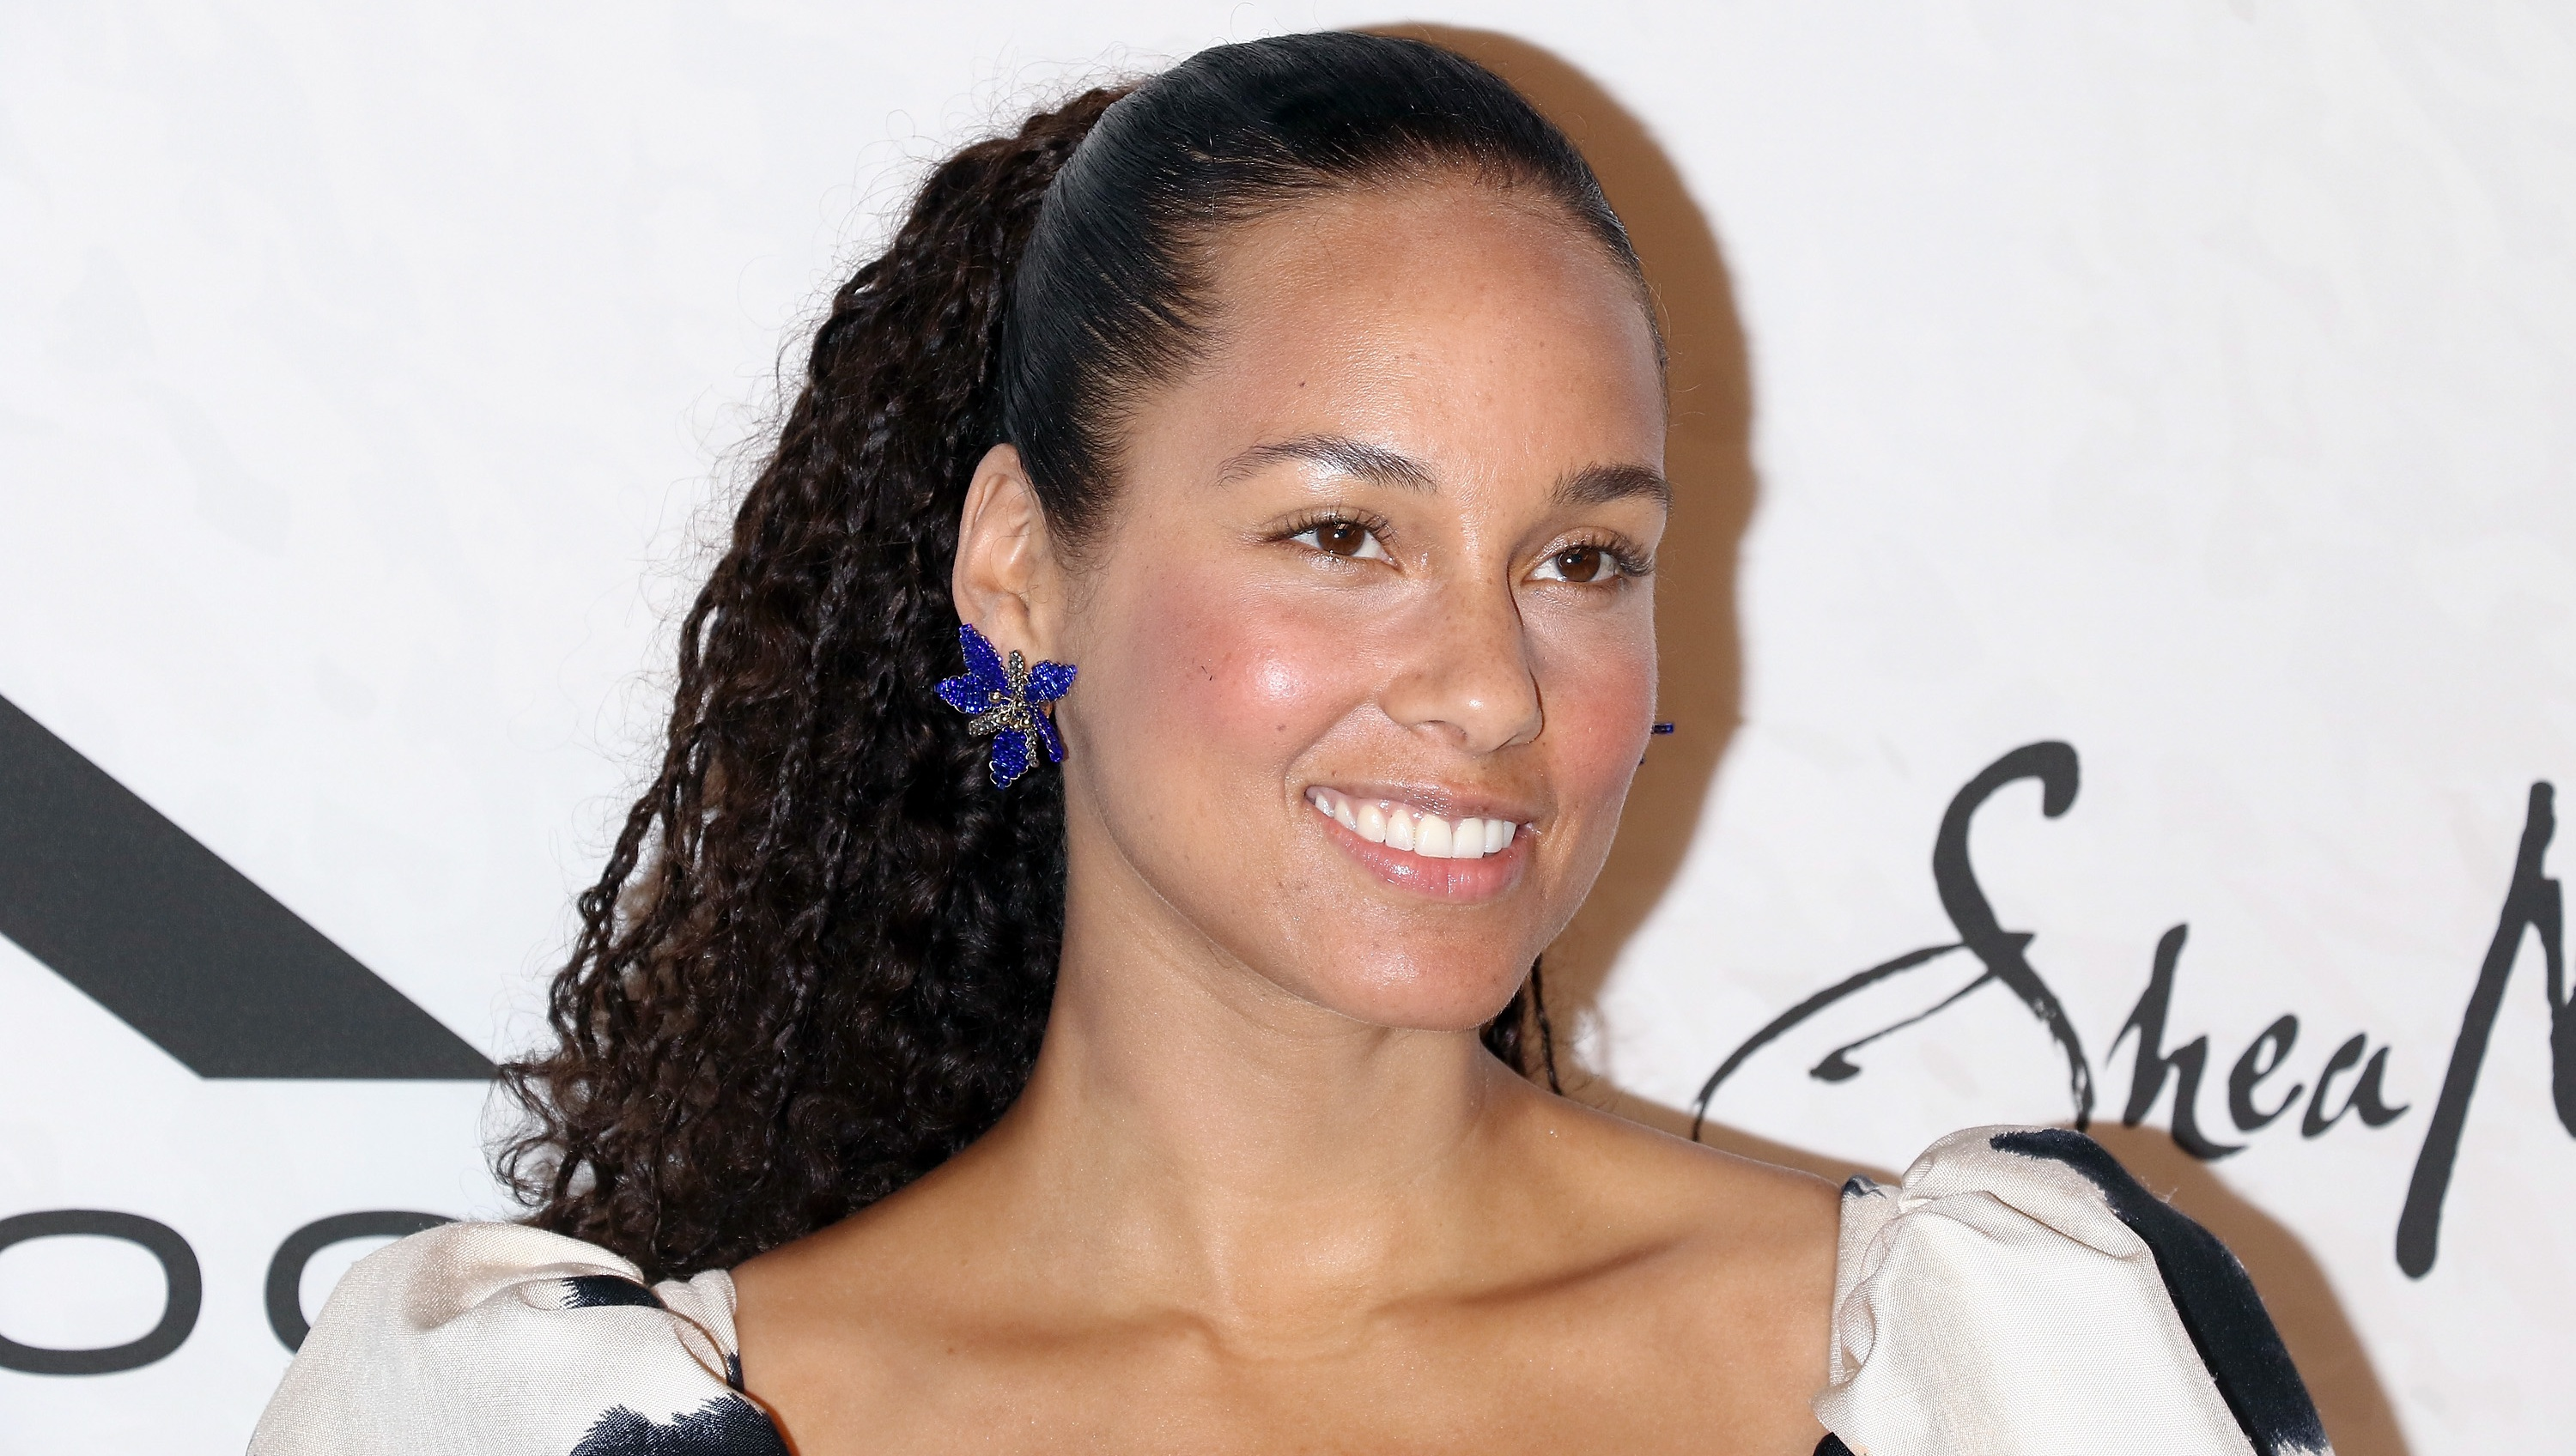 Singer/songwriter Alicia Keys attends the 2018 Variety's Power of Women: New York at Cipriani Wall